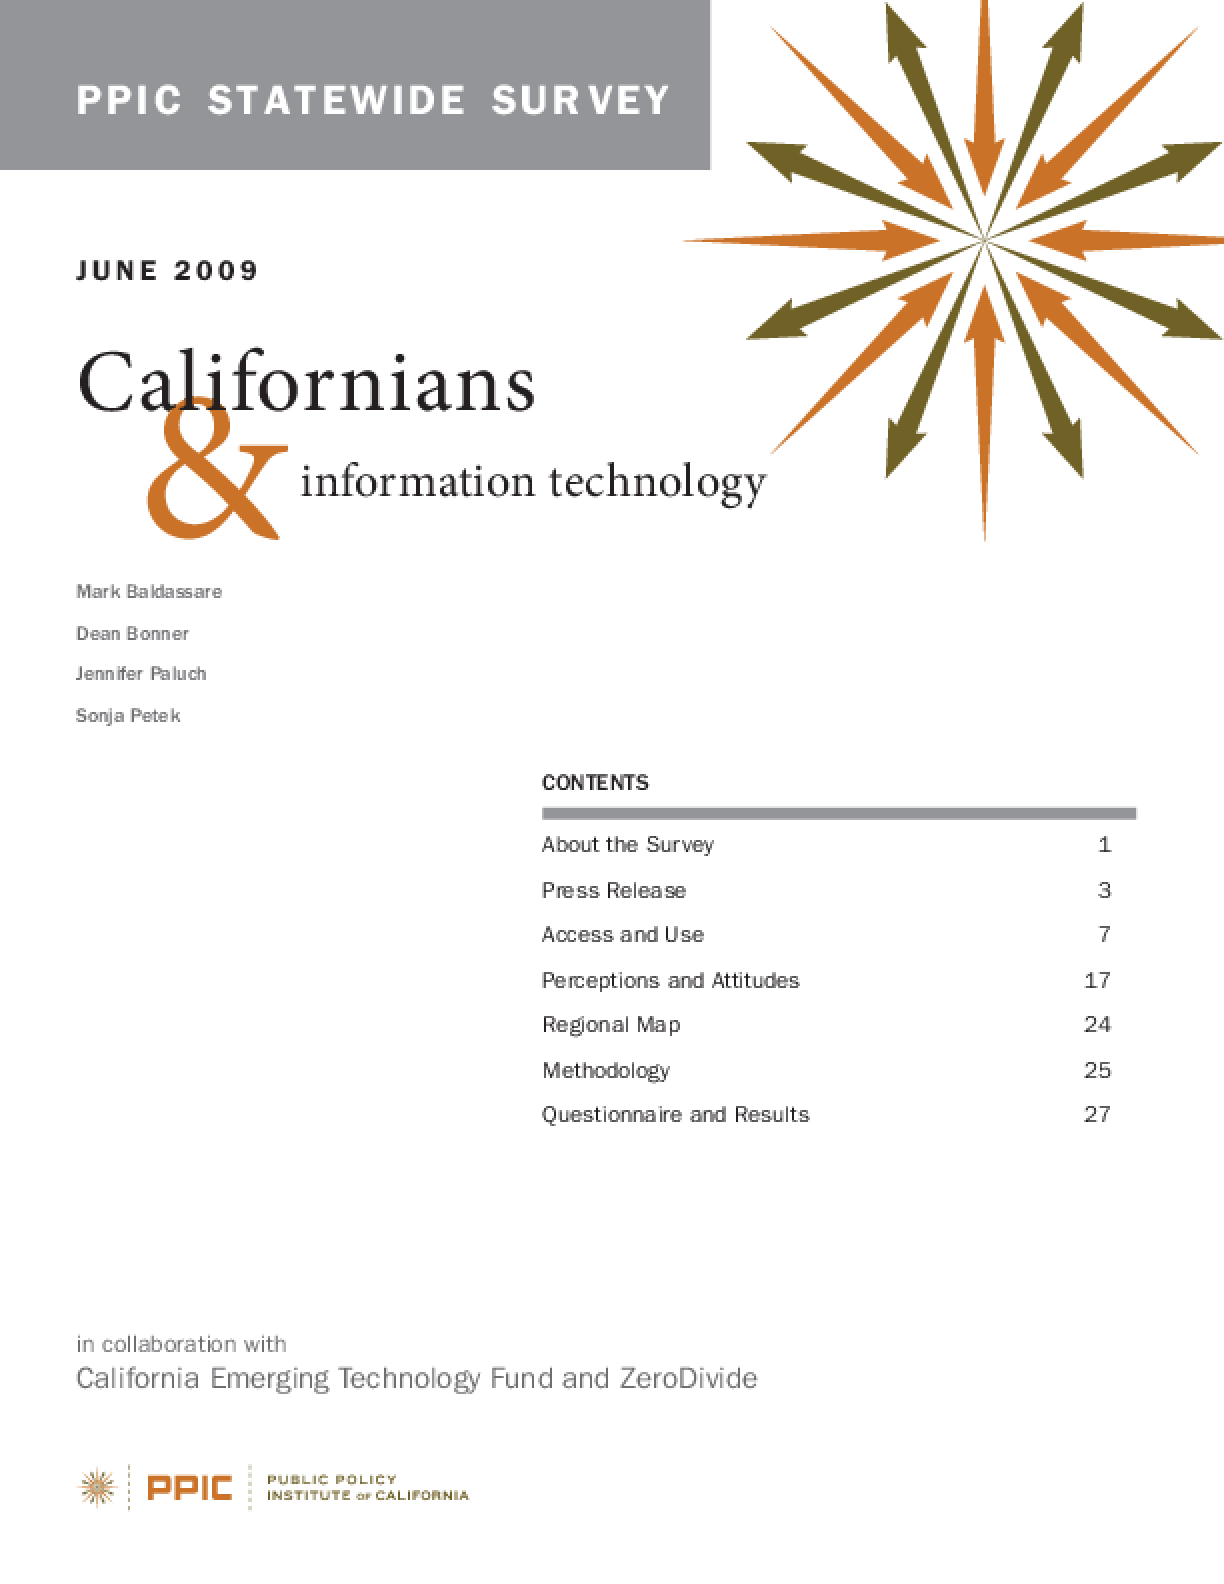 PPIC Statewide Survey: Californians and Information Technology